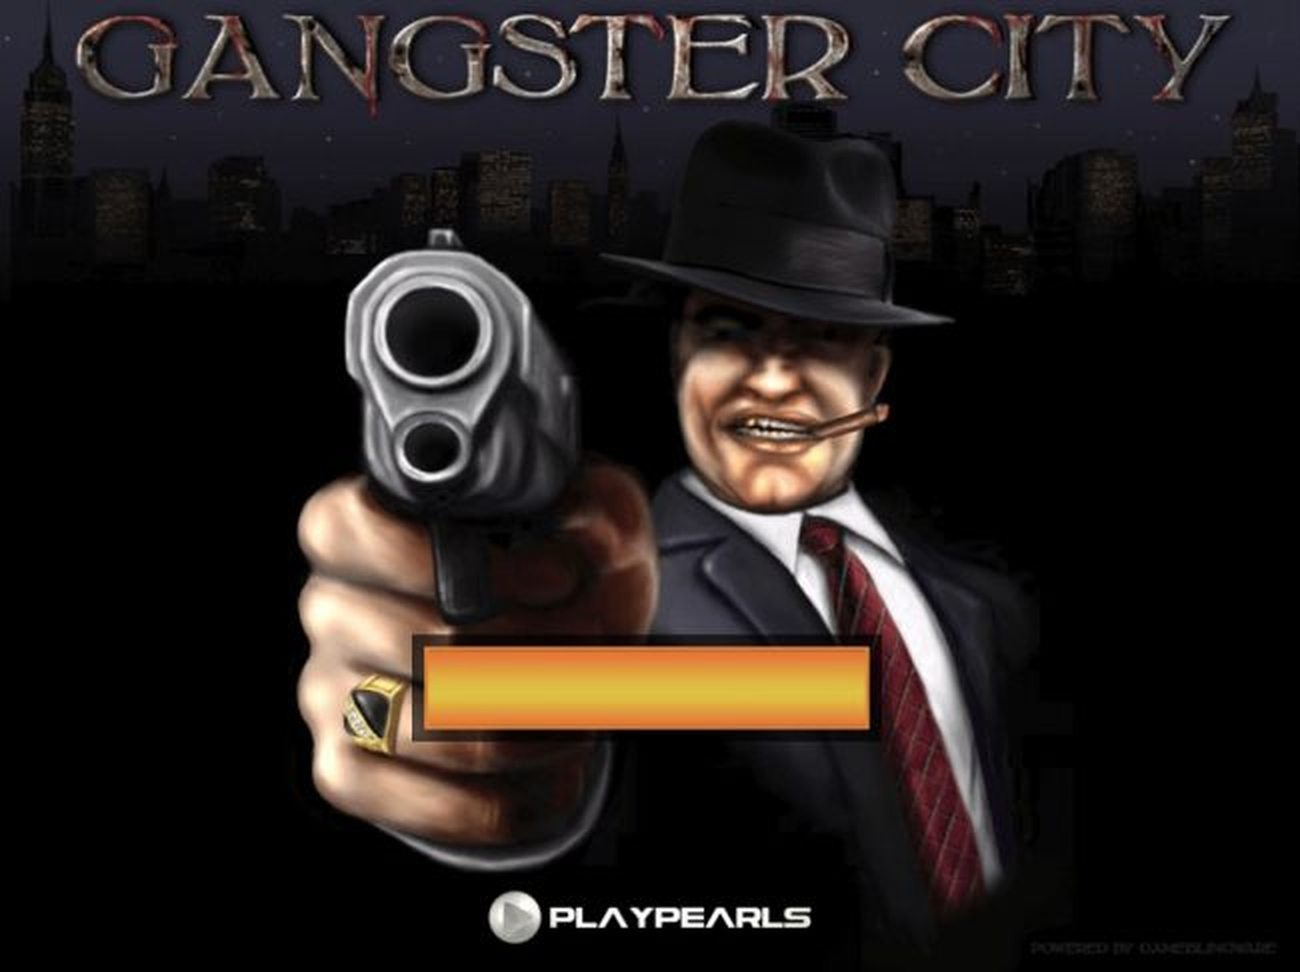 The Gangster City Online Slot Demo Game by PlayPearls